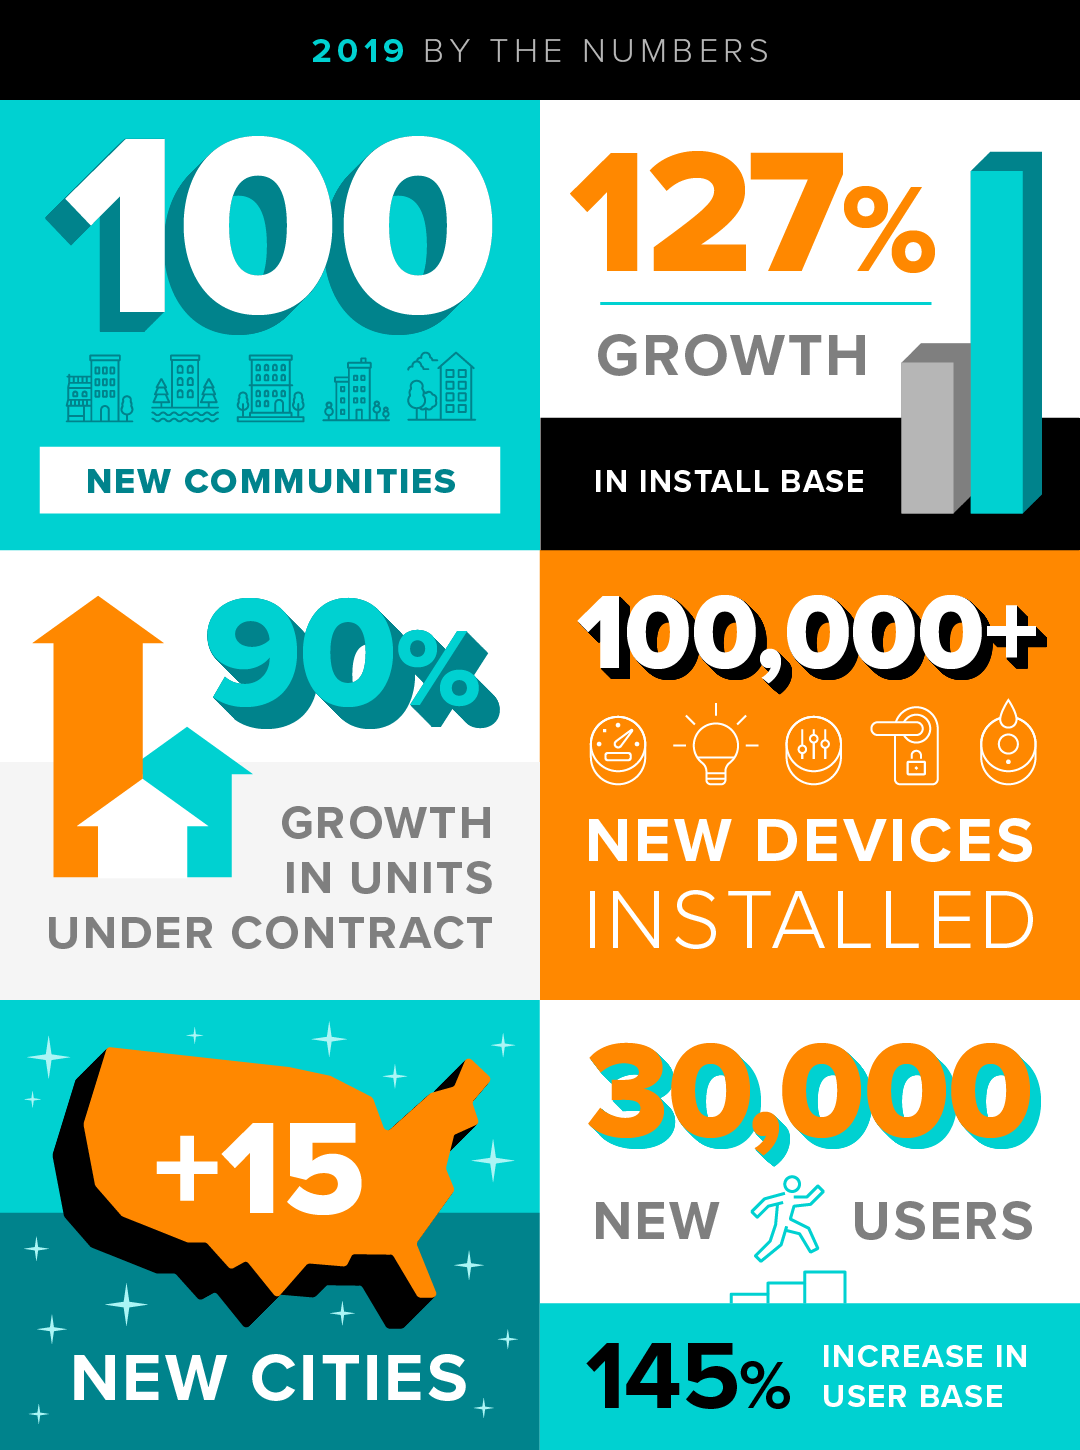 2019 in Review Infographic